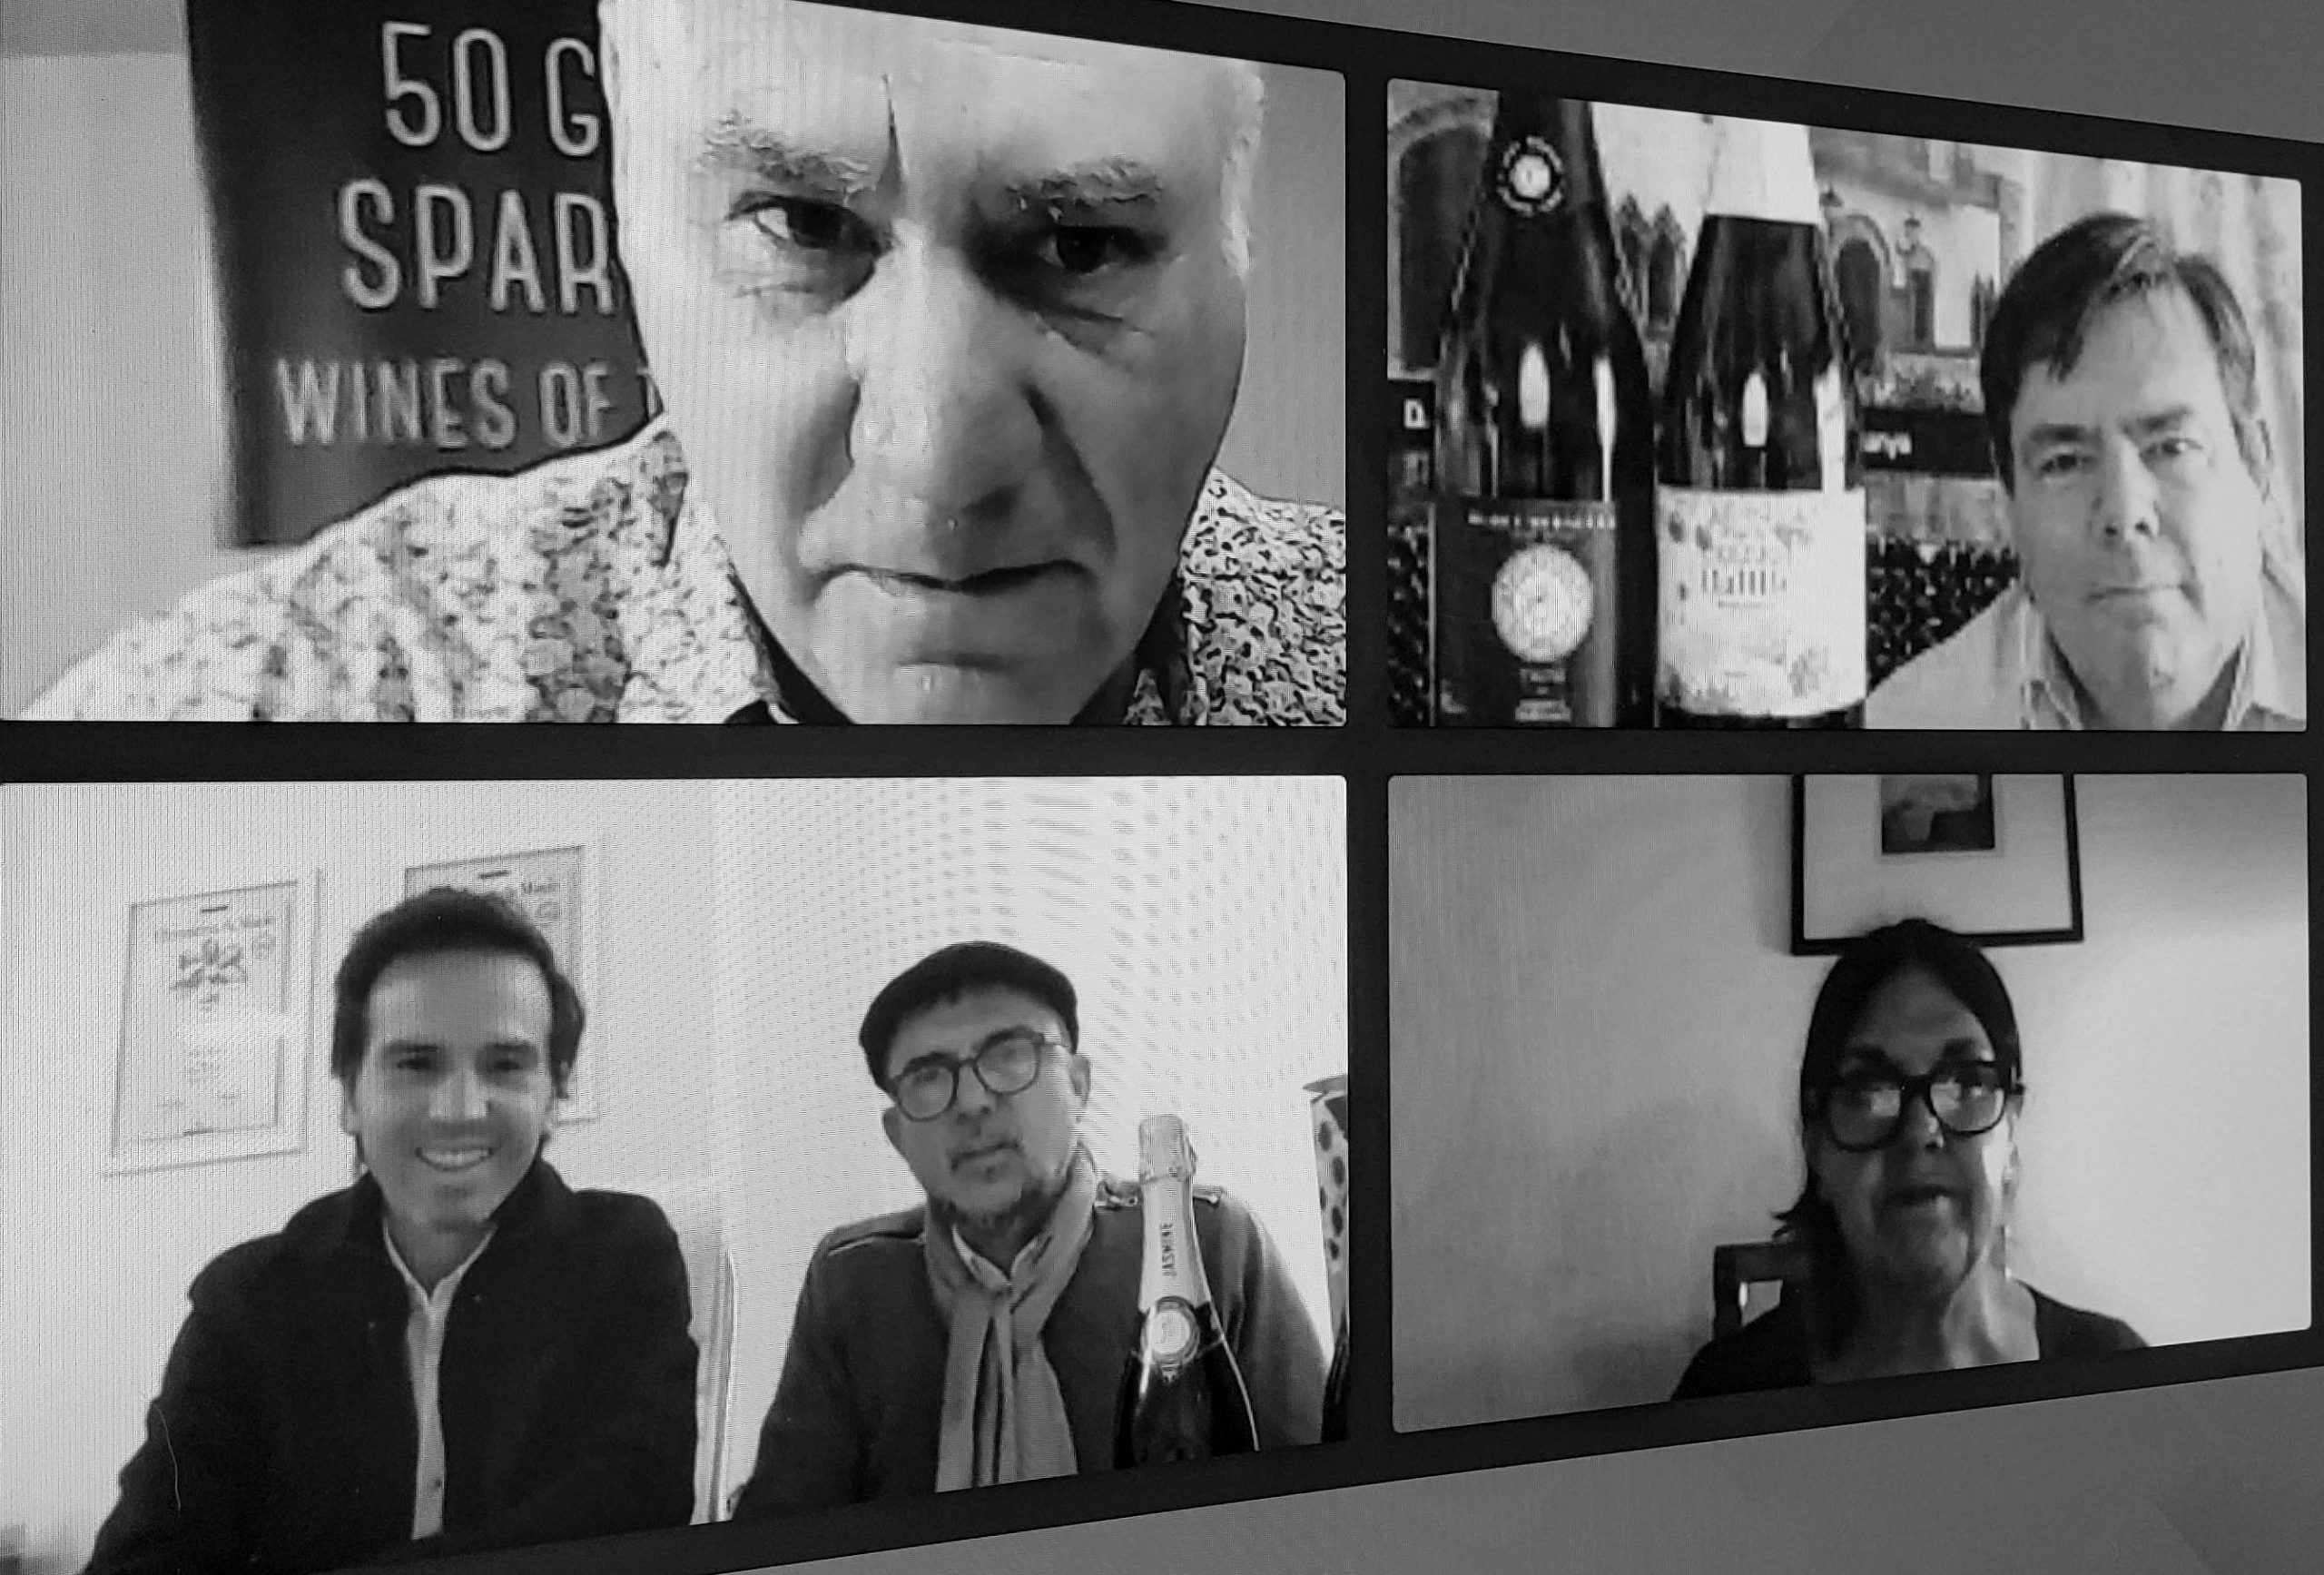 Sparkling Wine Week with Anthony Swift of Wine Pleasures, Gareth York of Ferre I Catasus, Fernando Cardinali and Julien Mendoza of Jasmine Monet and Pam Geddes of La Pamelita during Wine Pleasures Sparkling Wine Week July 2020